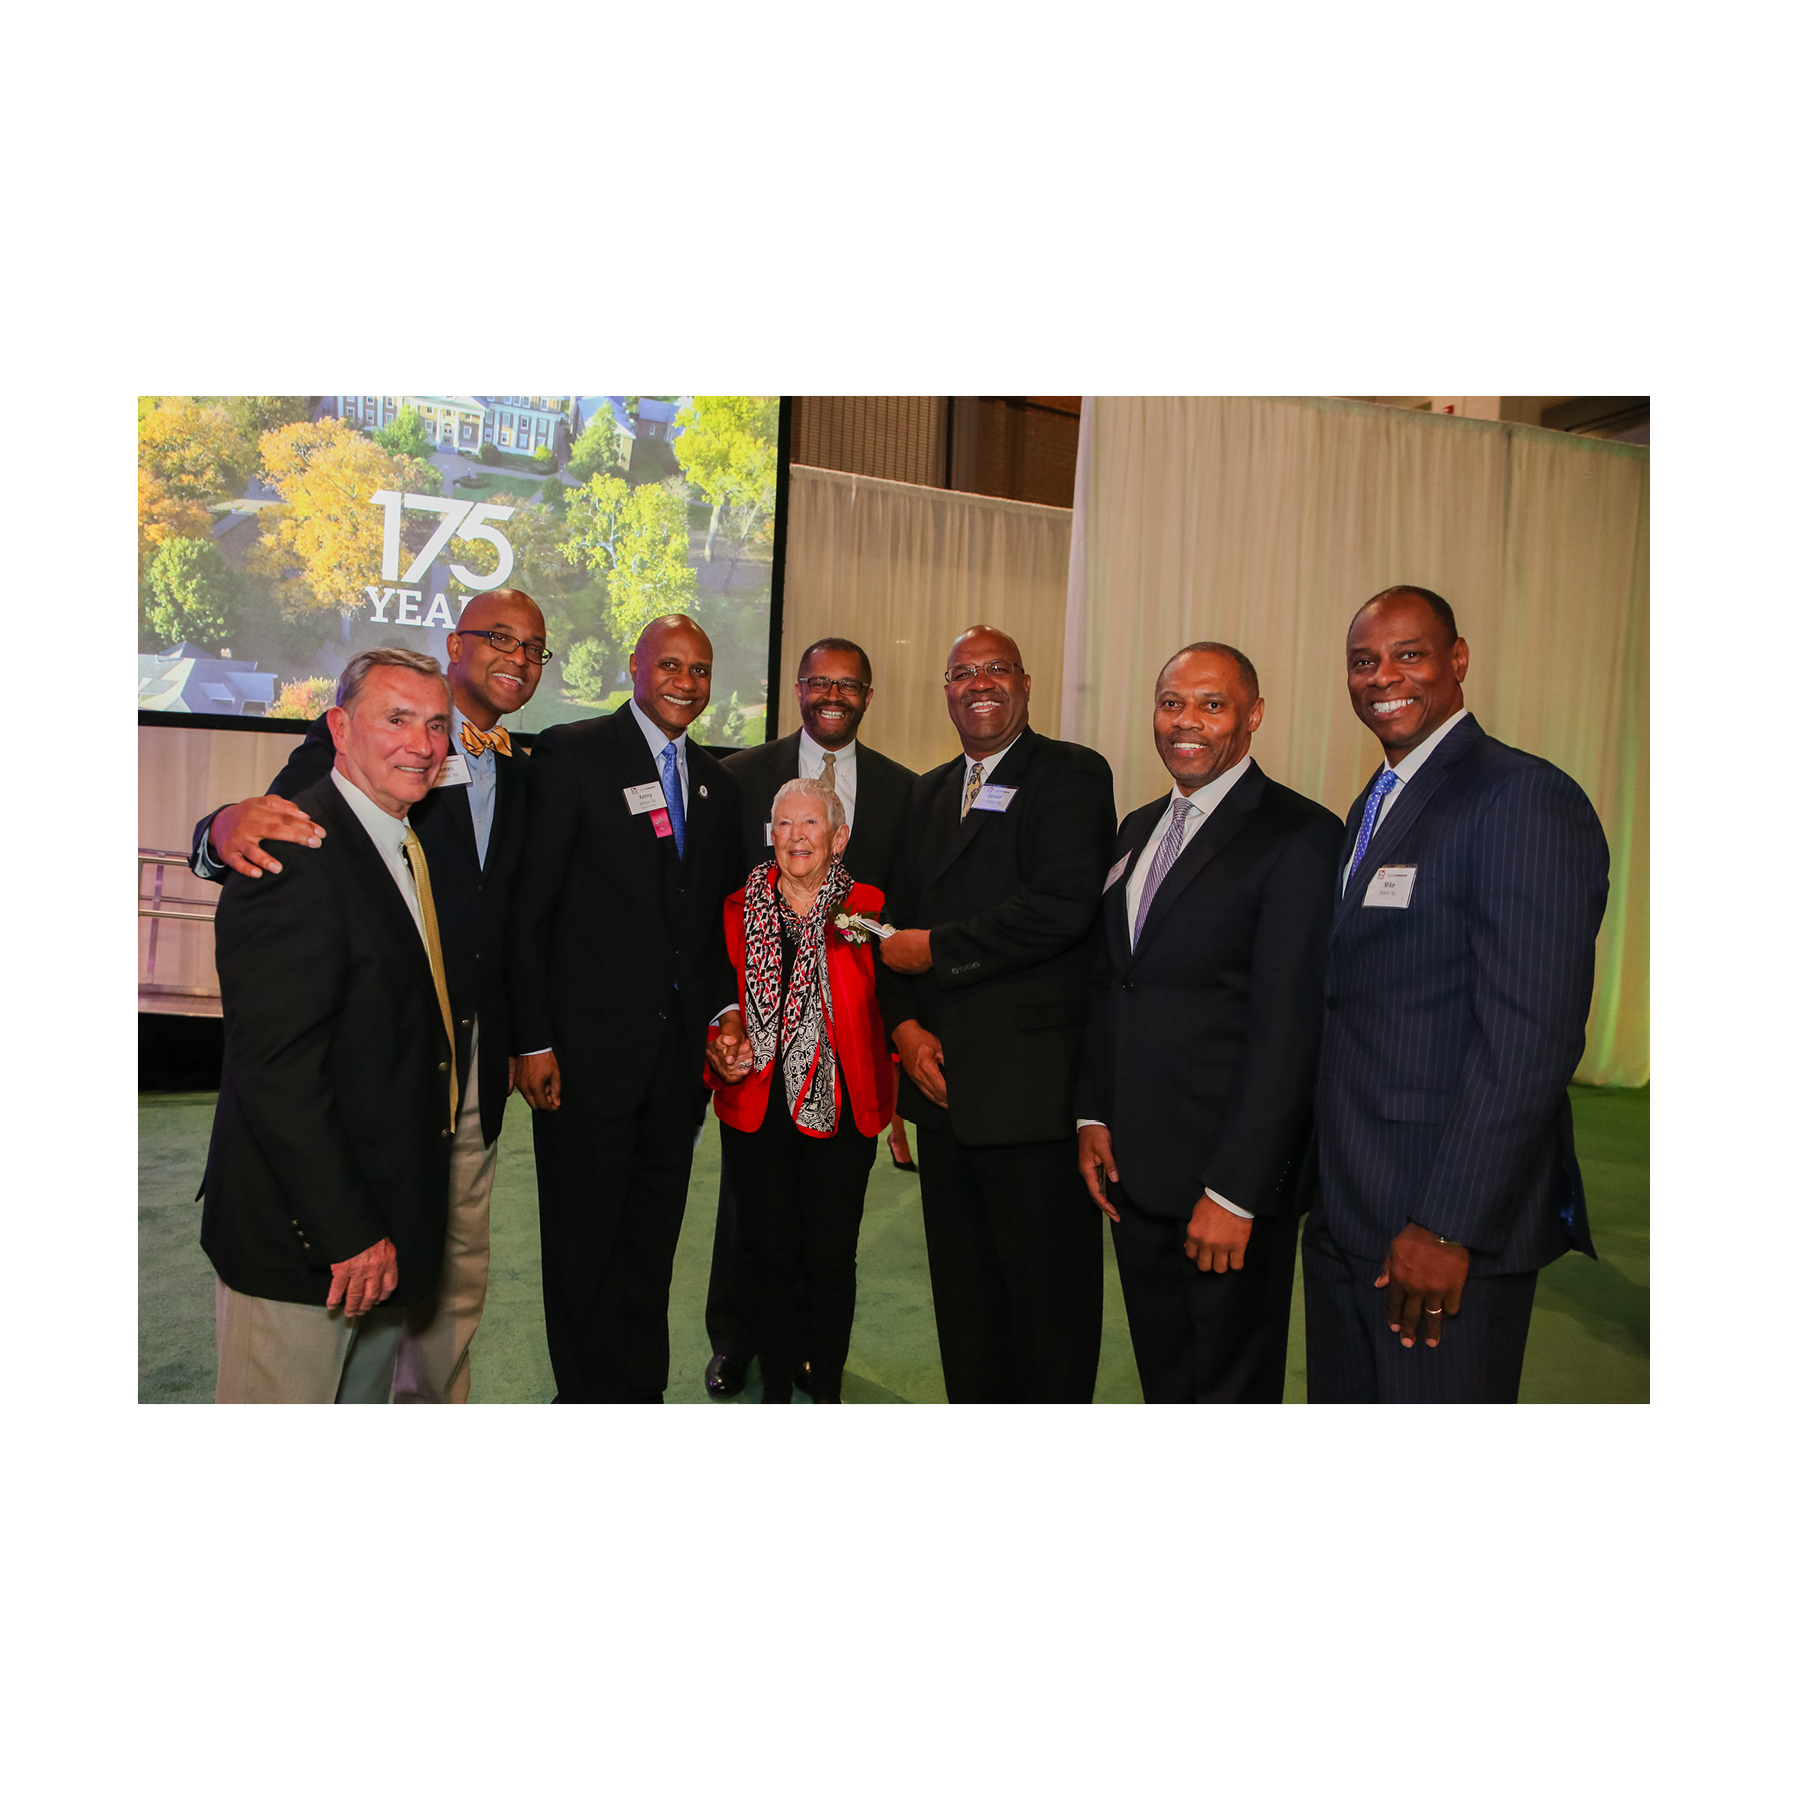 April 7, 2017 —Jo and Norm had previously asked our family to attend the Roanoke College Medal Award Ceremony during Alumni Weekend. Norm died four hours before it started. Walking into the ceremony, the family was greeted by Coach Ed Green (far left), Kenny Belton (third from left), along with two basketball team members and the Four Horsemen, who had all flown to Roanoke specifically to surprise Norm and Jo for the event. Jo asked Kenny to sit in Barb's father's place at the family's table.  (photo courtesy of Roanoke College)